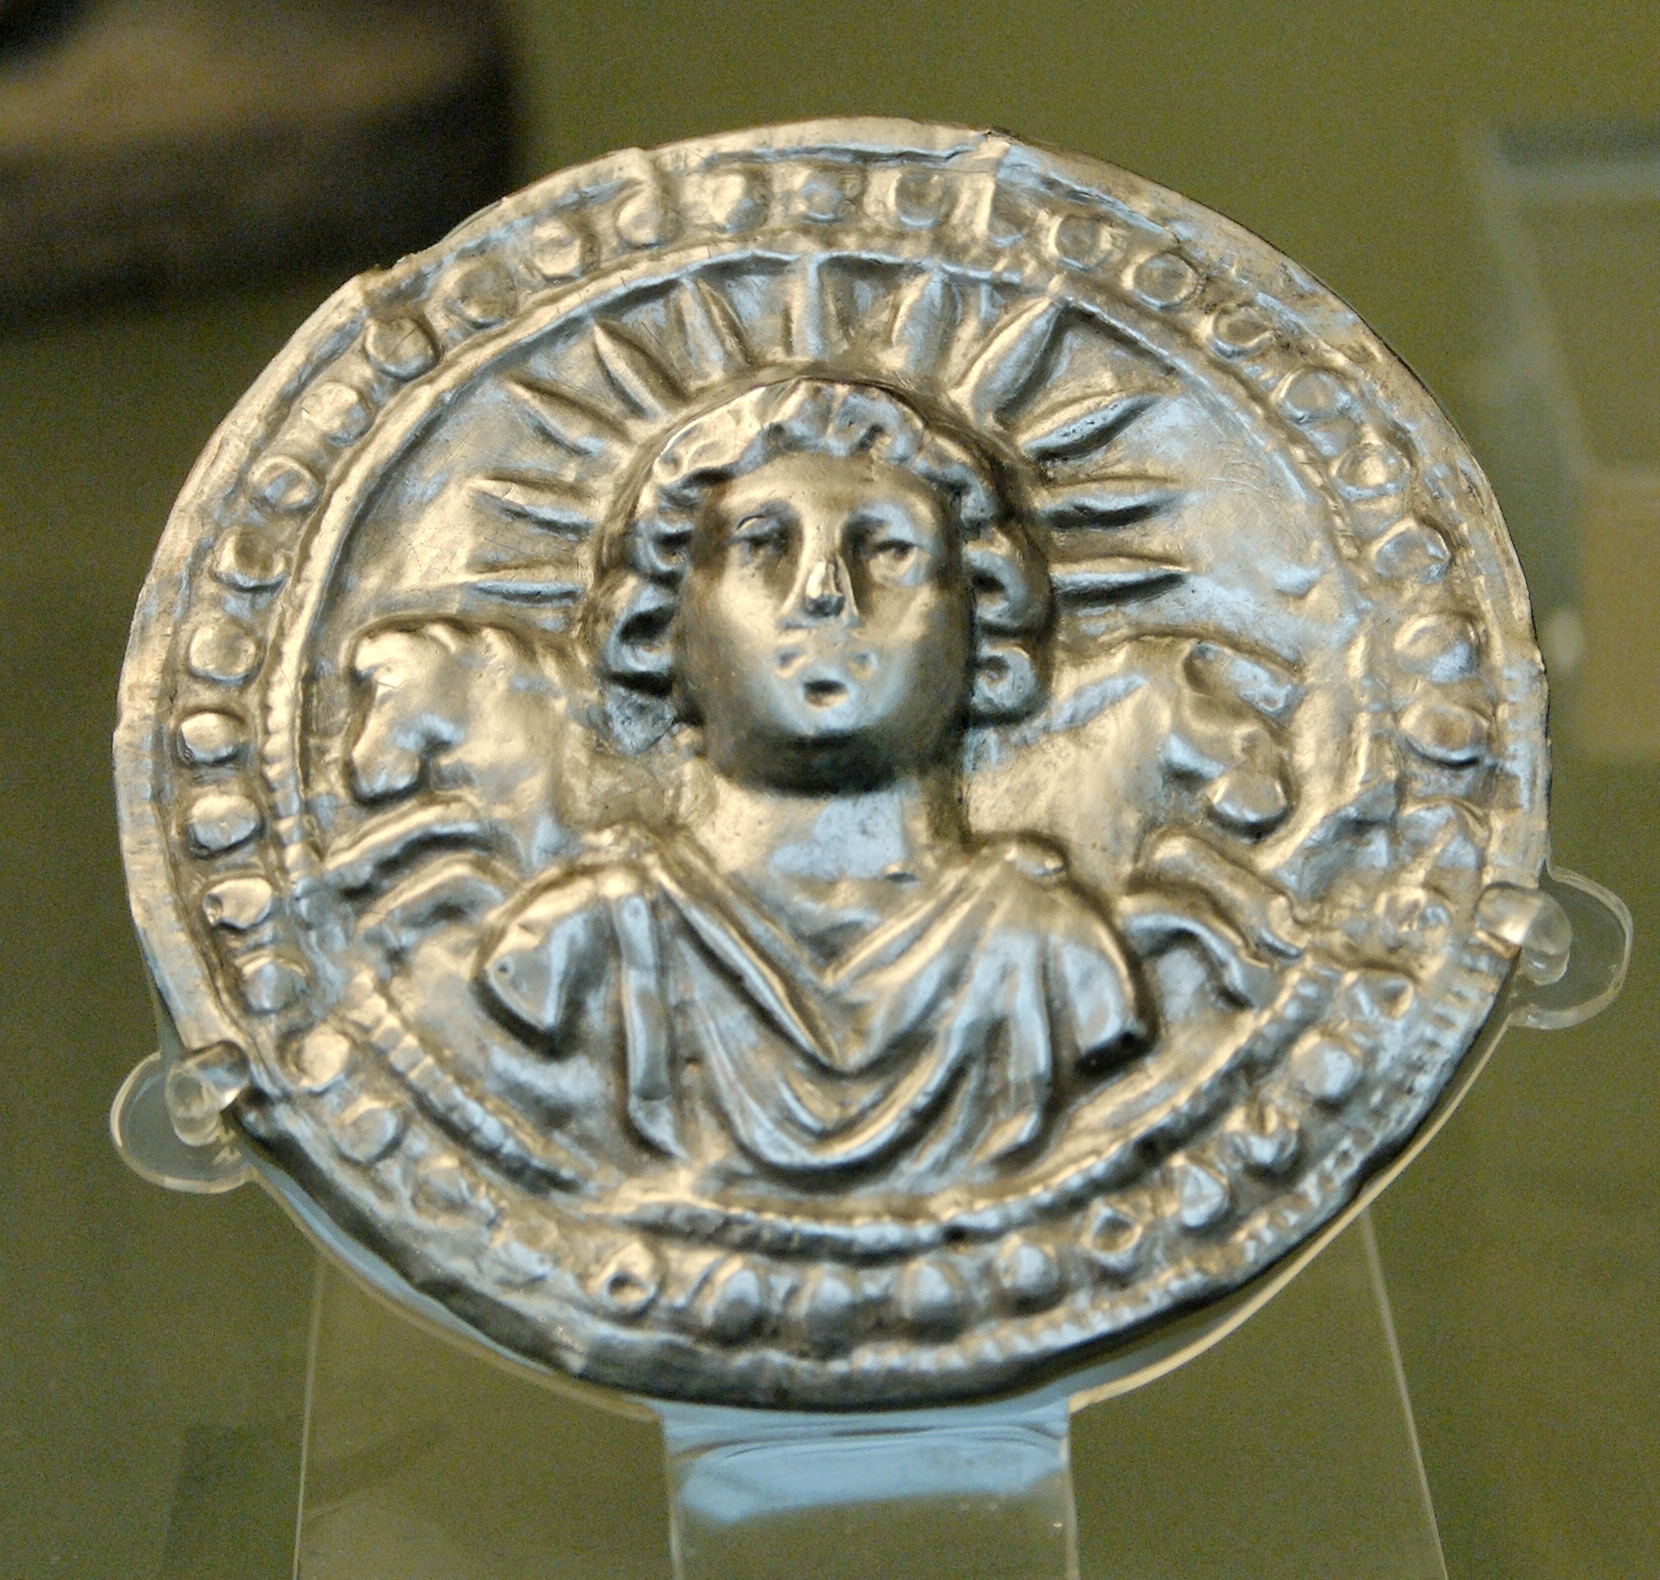 OMG, look at this image of Sol Invictus, he even had 2 horses, like the Arundar Mold. =P